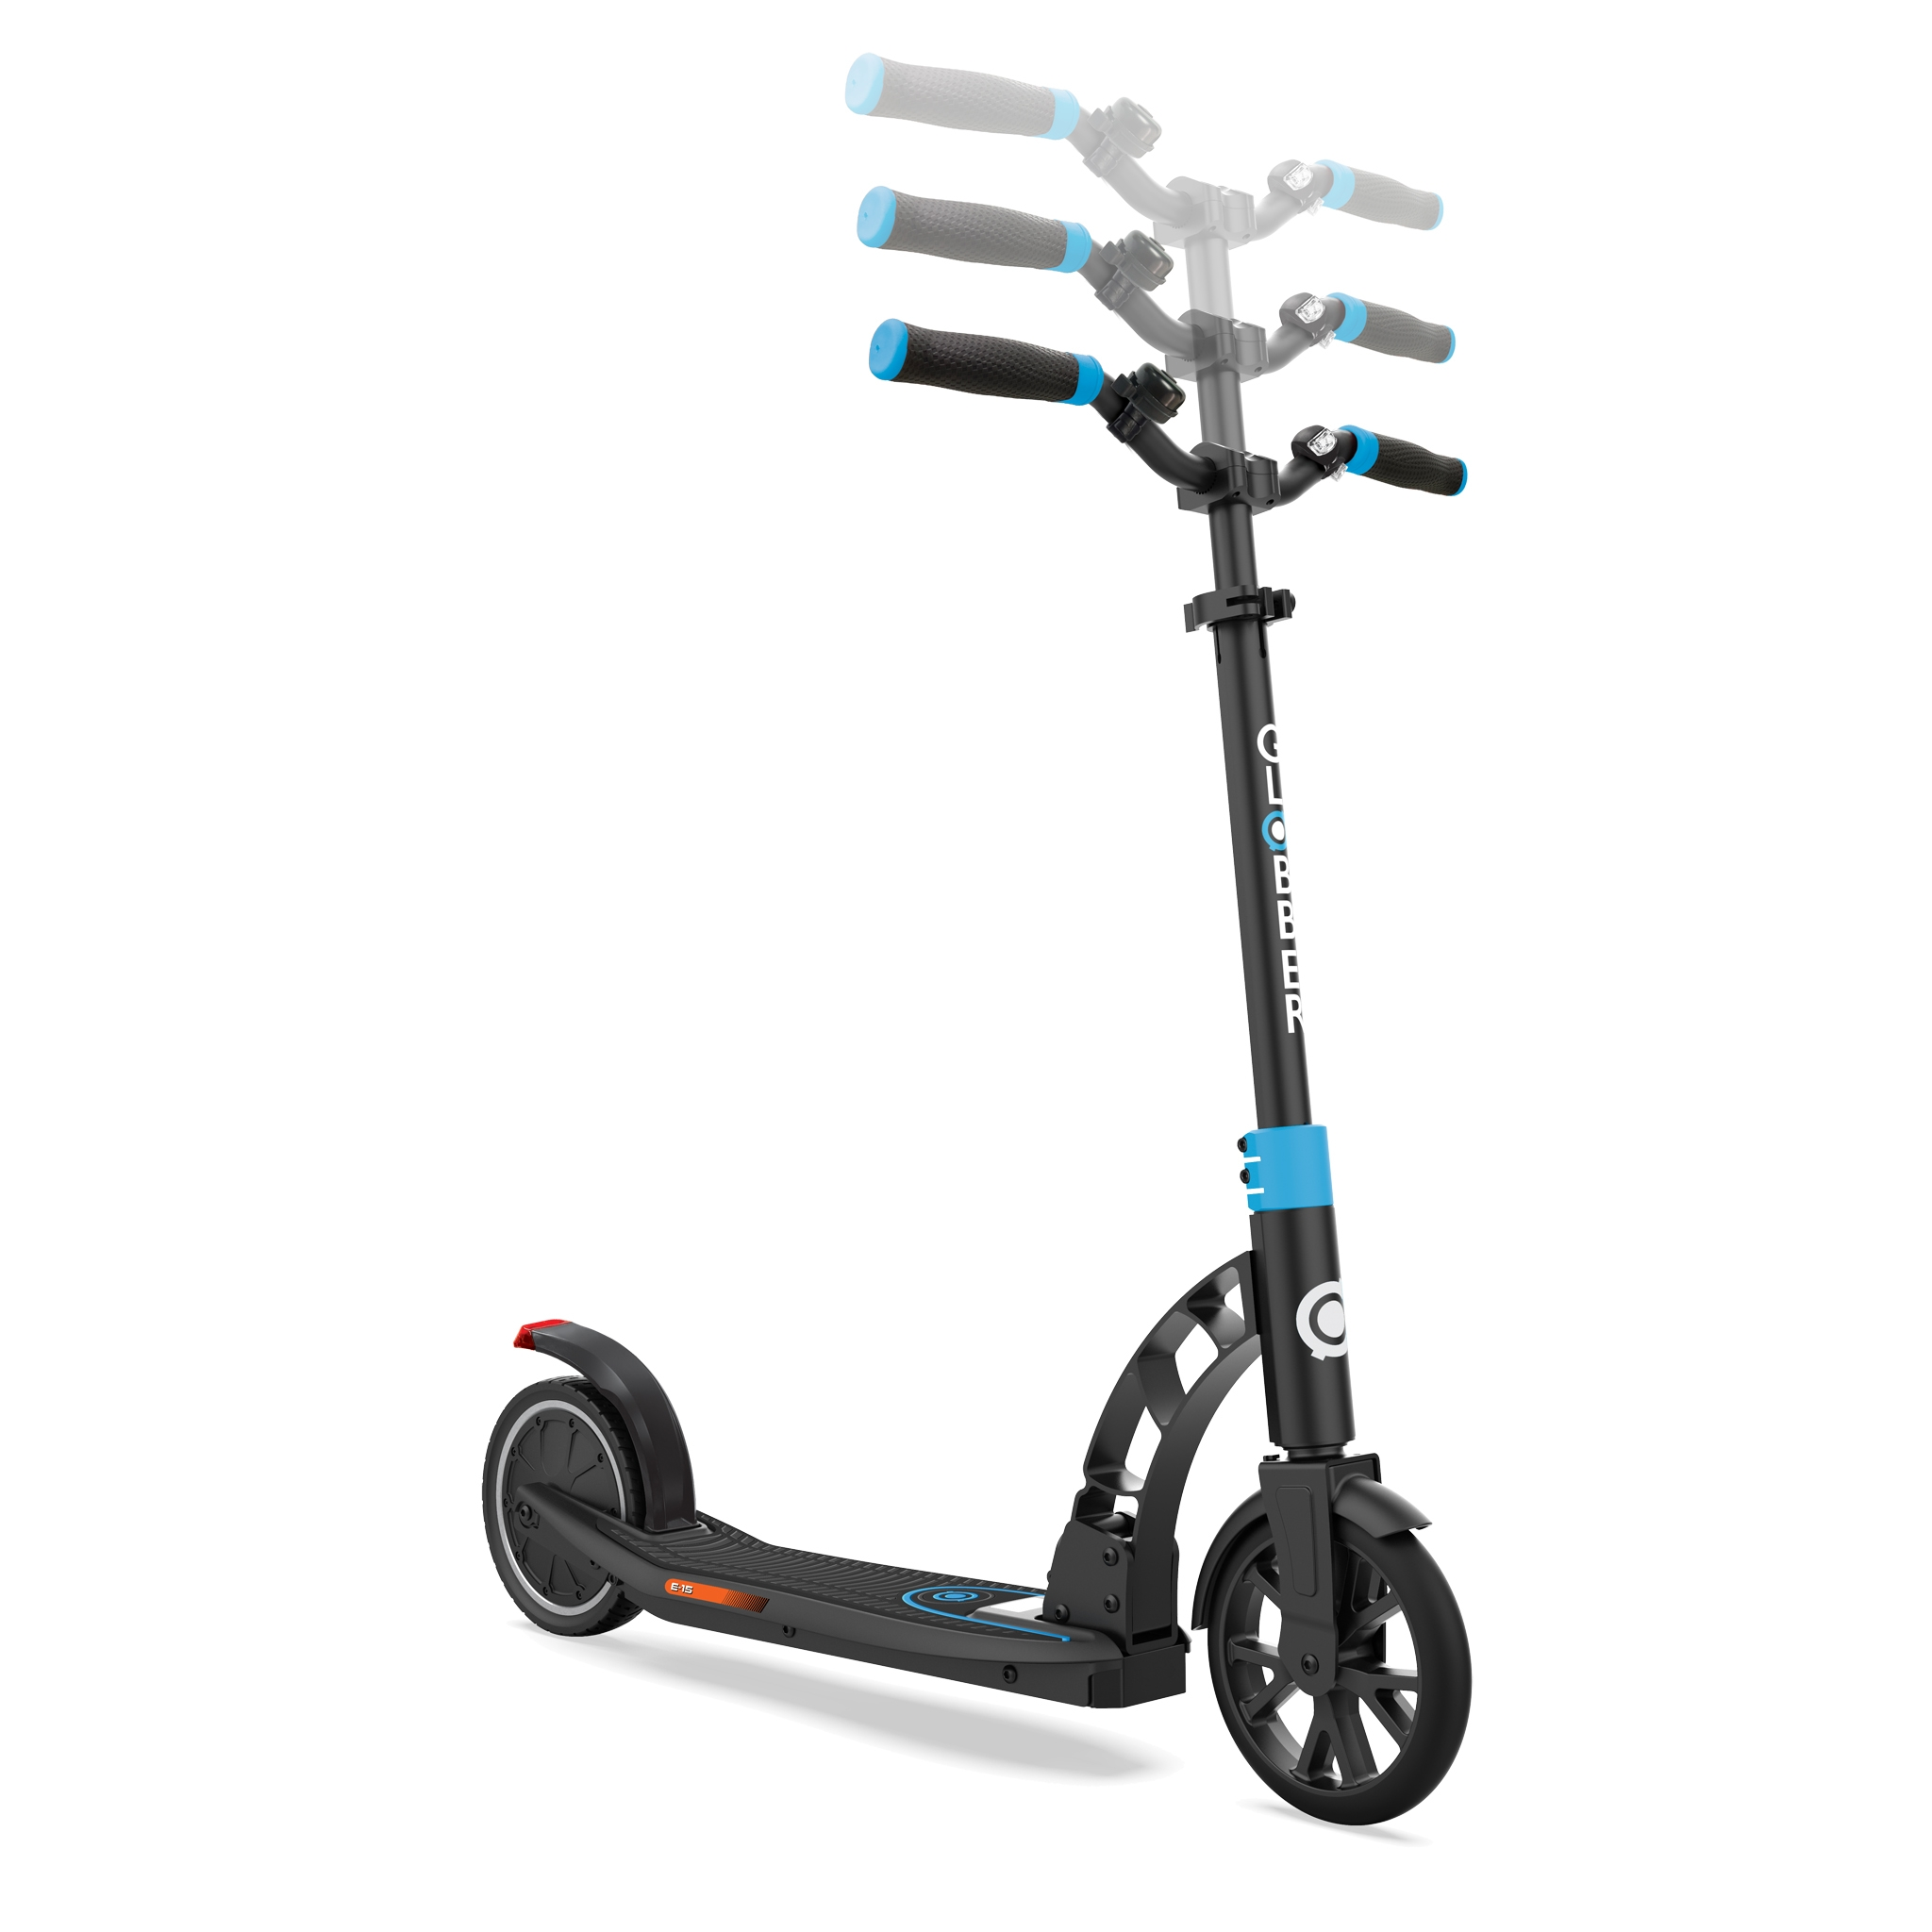 Globber-ONE-K-E-MOTION-15-foldable-electric-scooter-for-teens-and-young-adults-aged-14+-adjustable-e-scooter-sky-blue 1